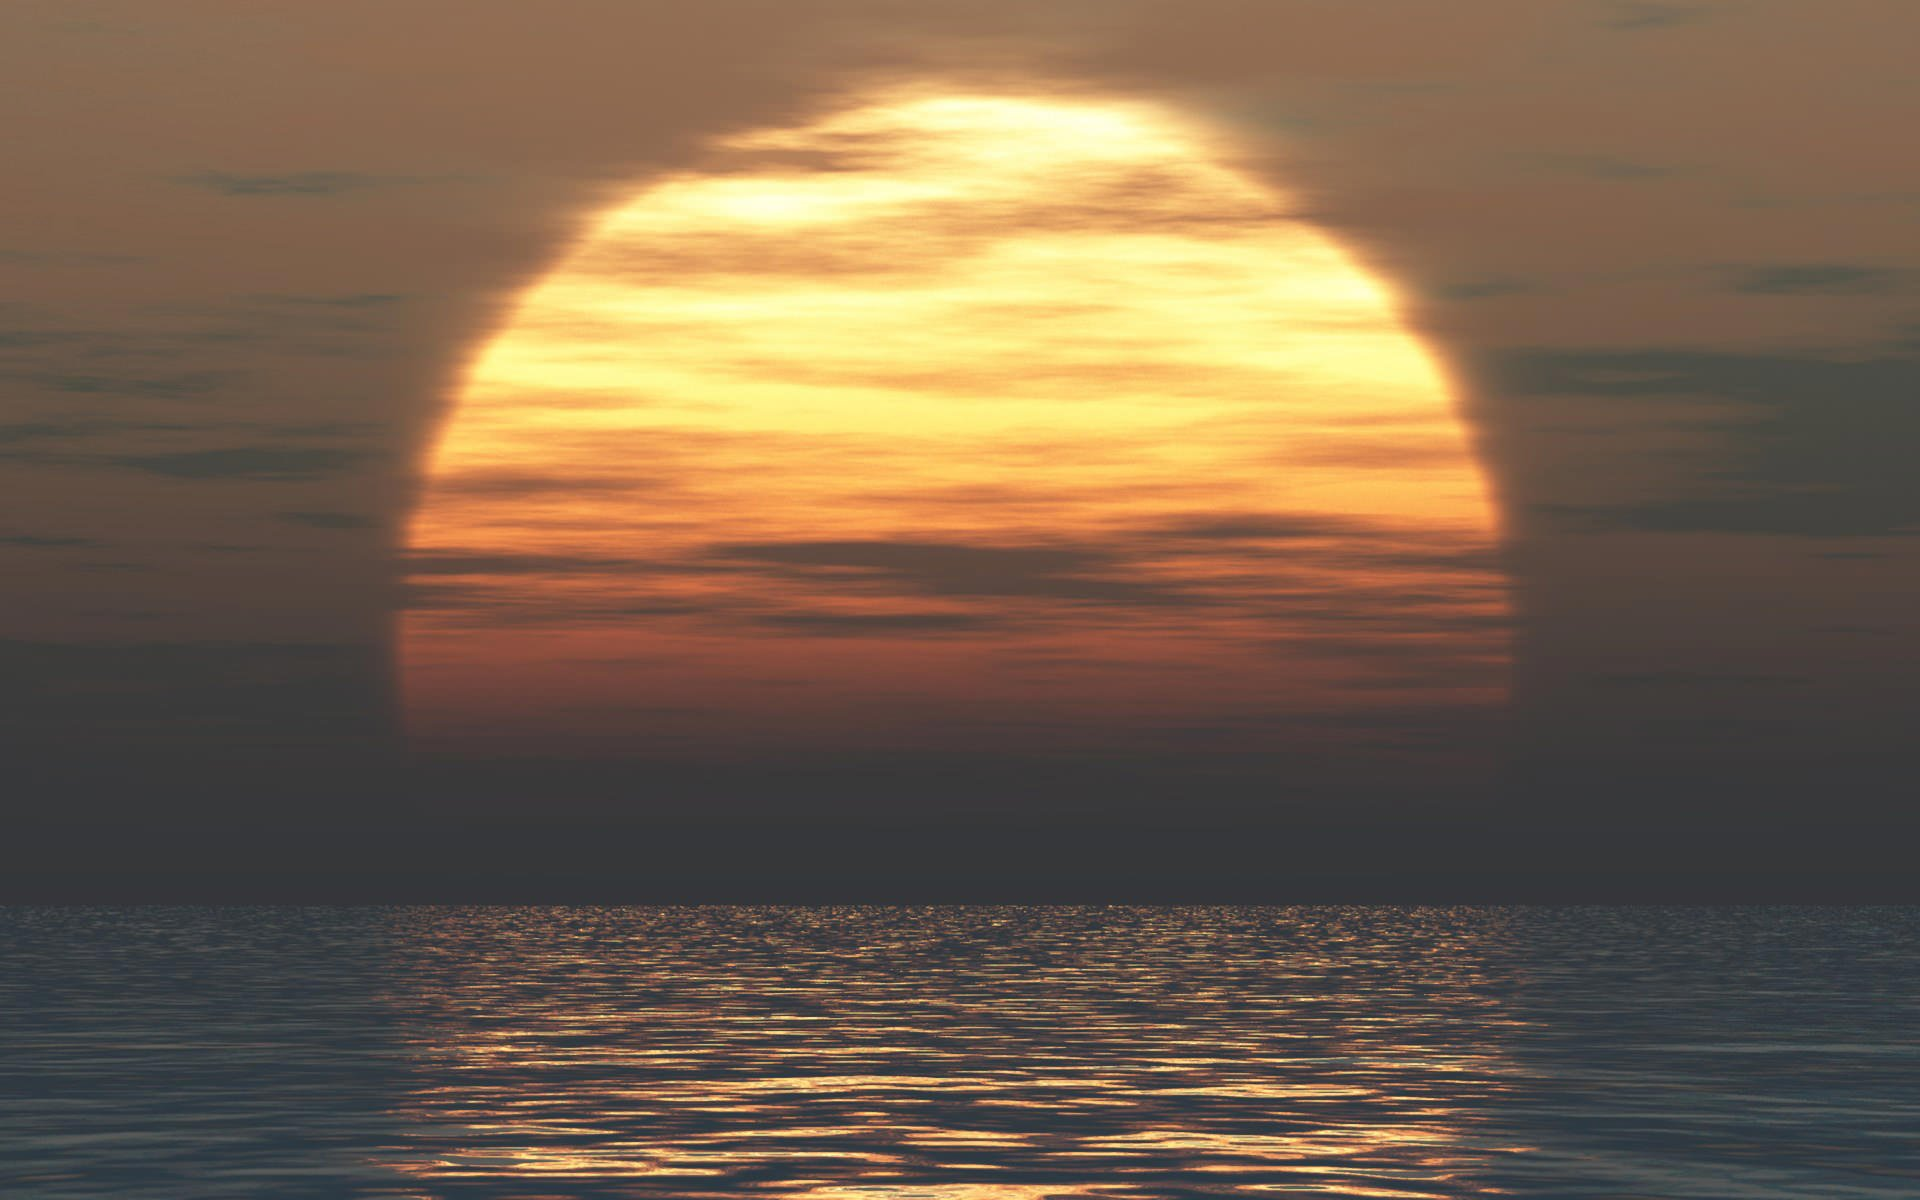 Sunset Background wallpaper   69868 1920x1200